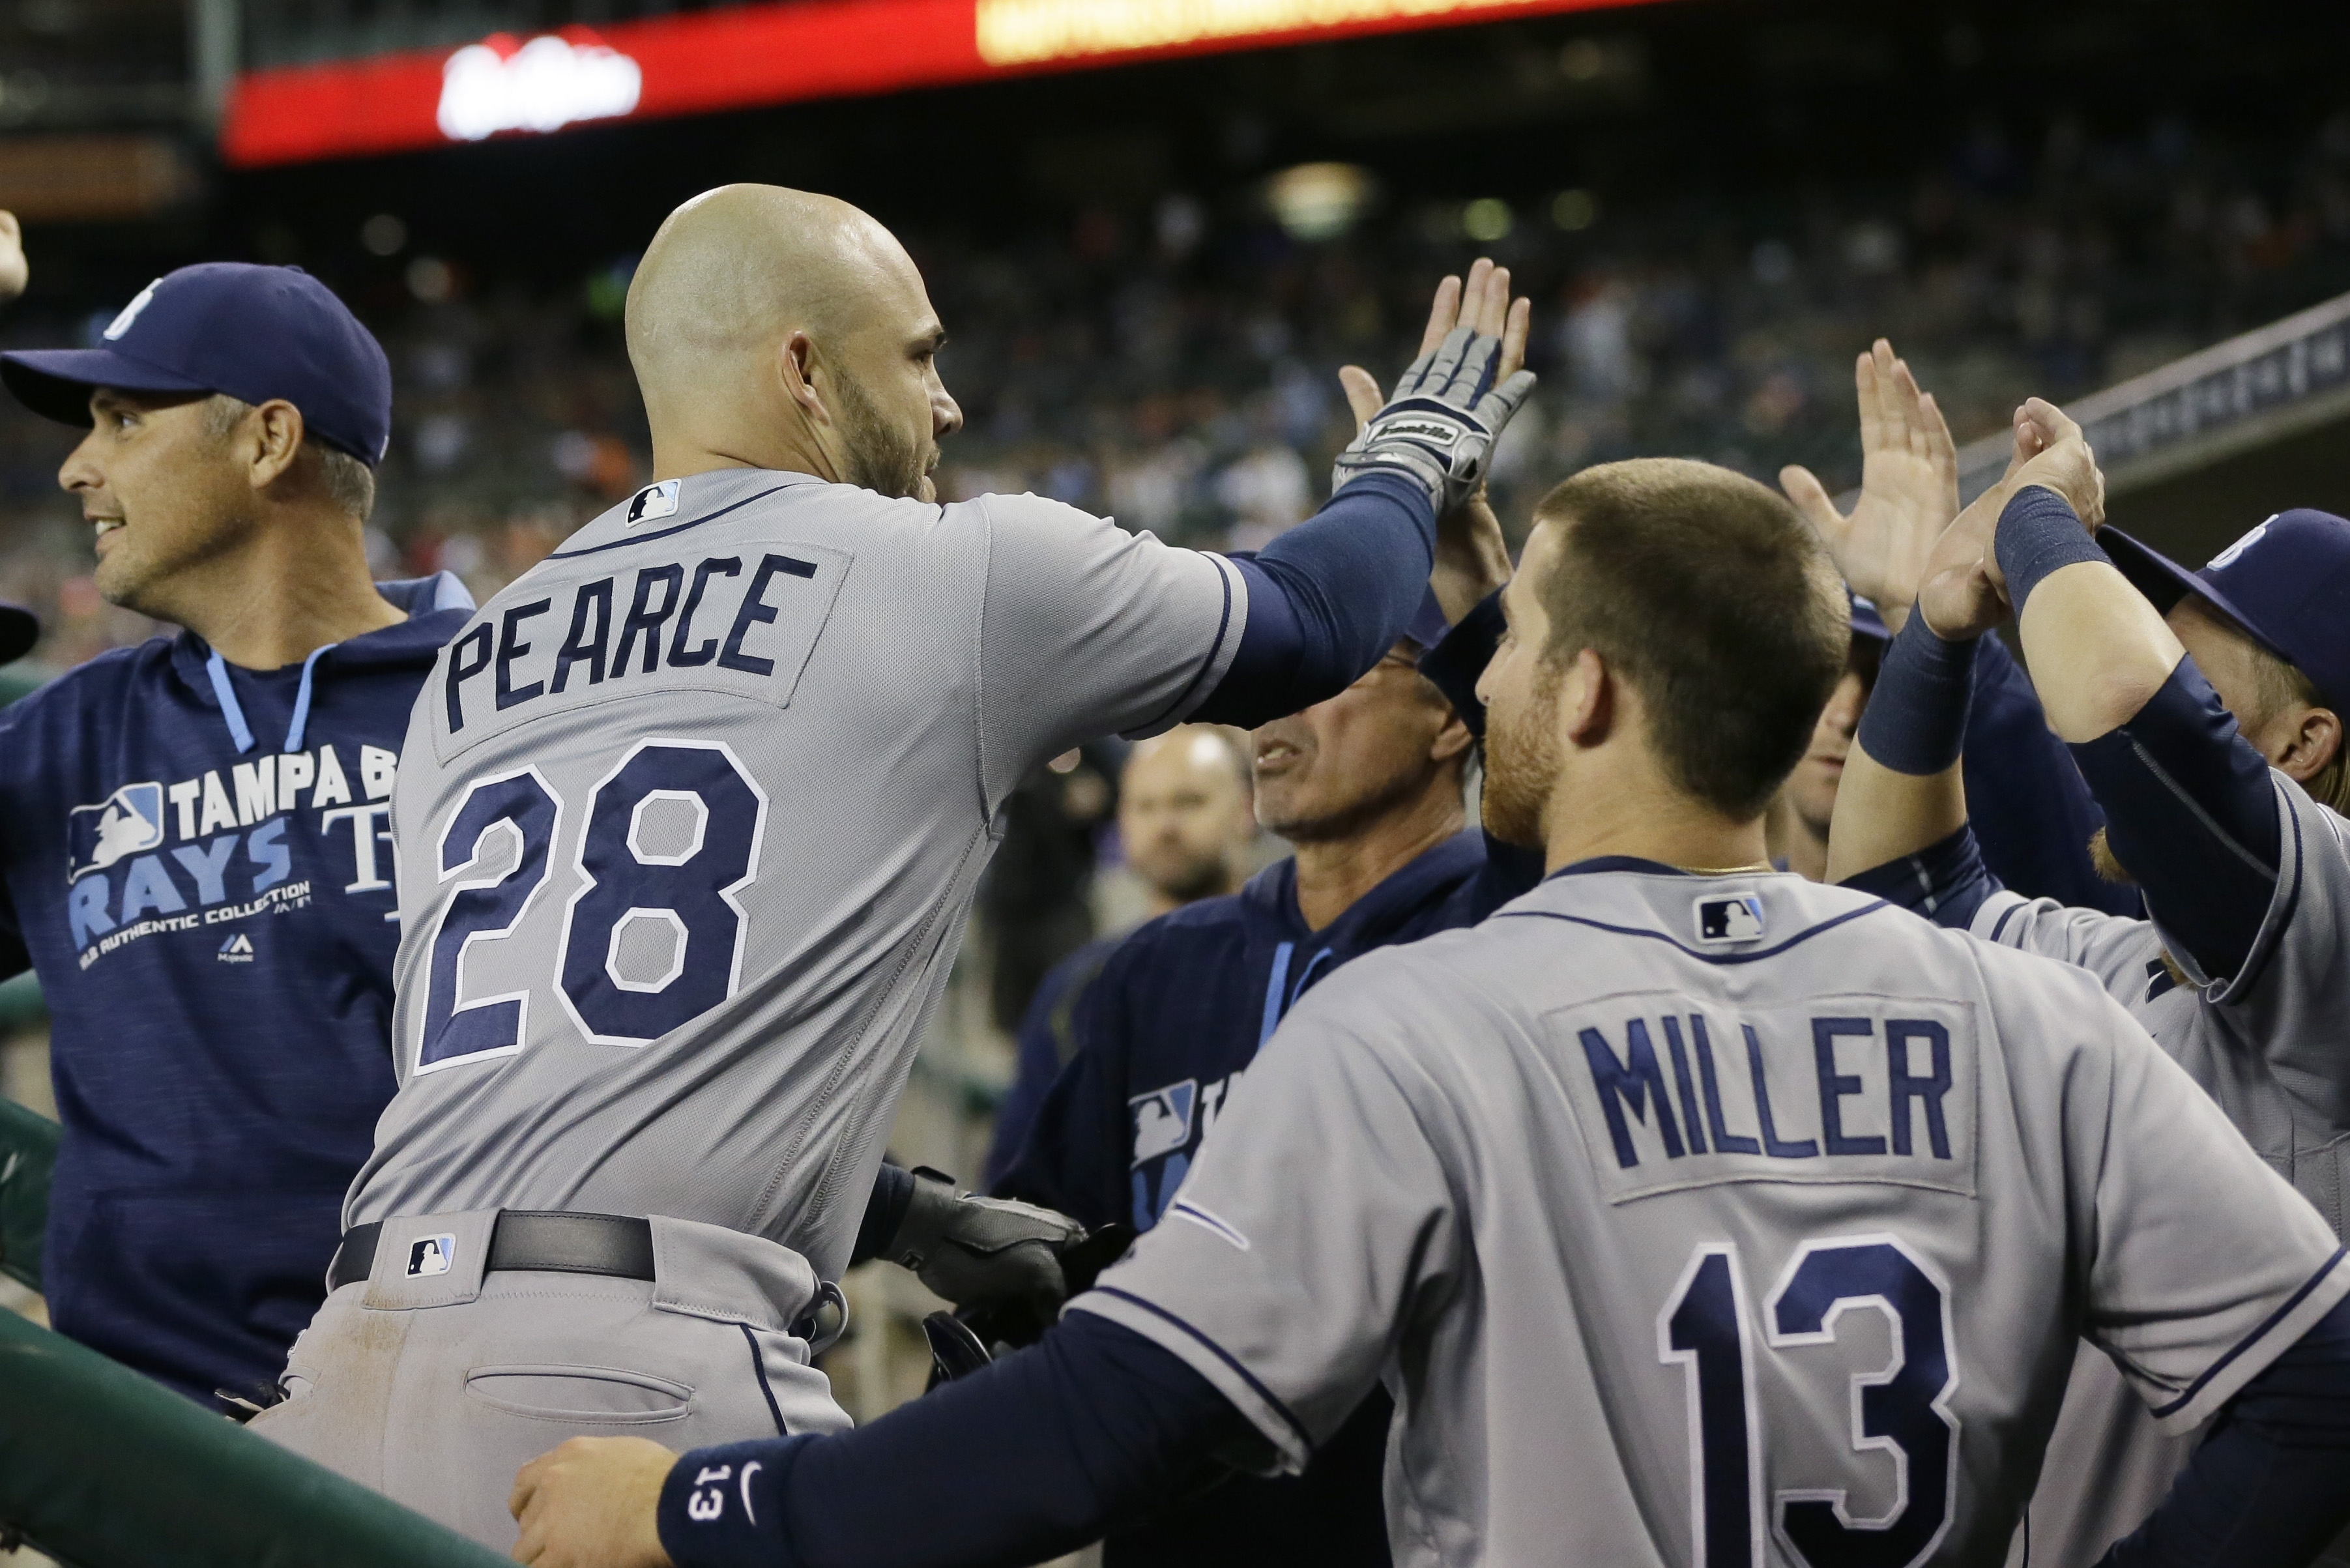 Tampa Bay Rays' Steve Pearce is greeted by teammates after hitting a solo home run during the eighth inning of a baseball game against the Detroit Tigers Friday, May 20, 2016, in Detroit. (AP Photo/Carlos Osorio)